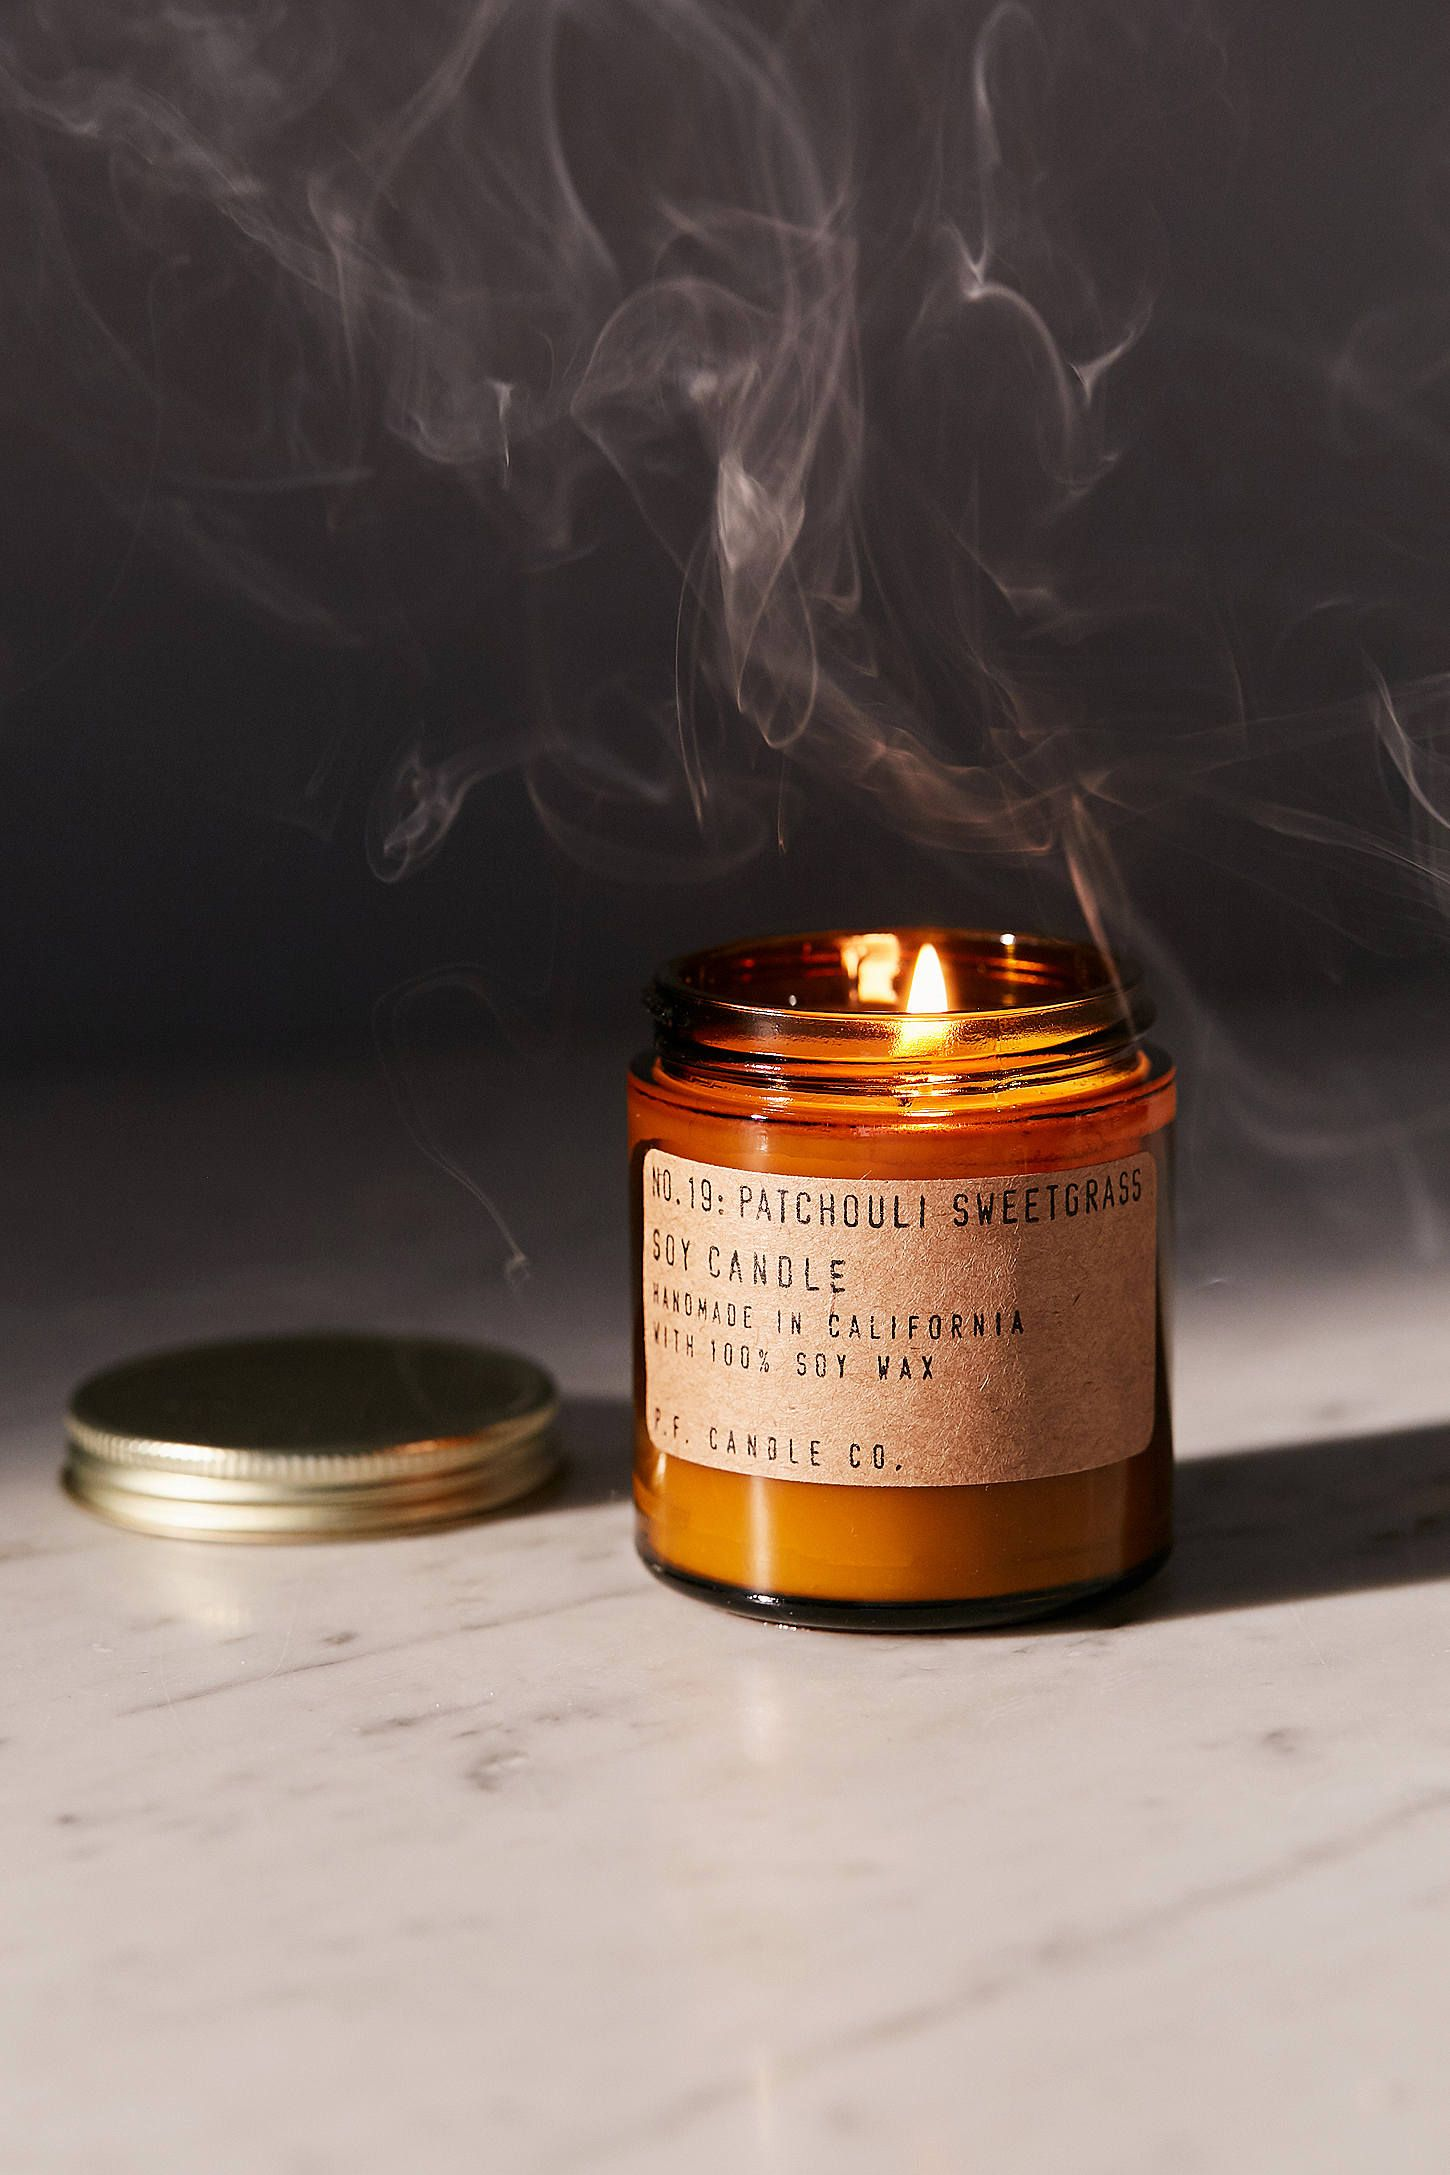 The Best Scented Candles To Buy In 2018 - Scented Candles ...